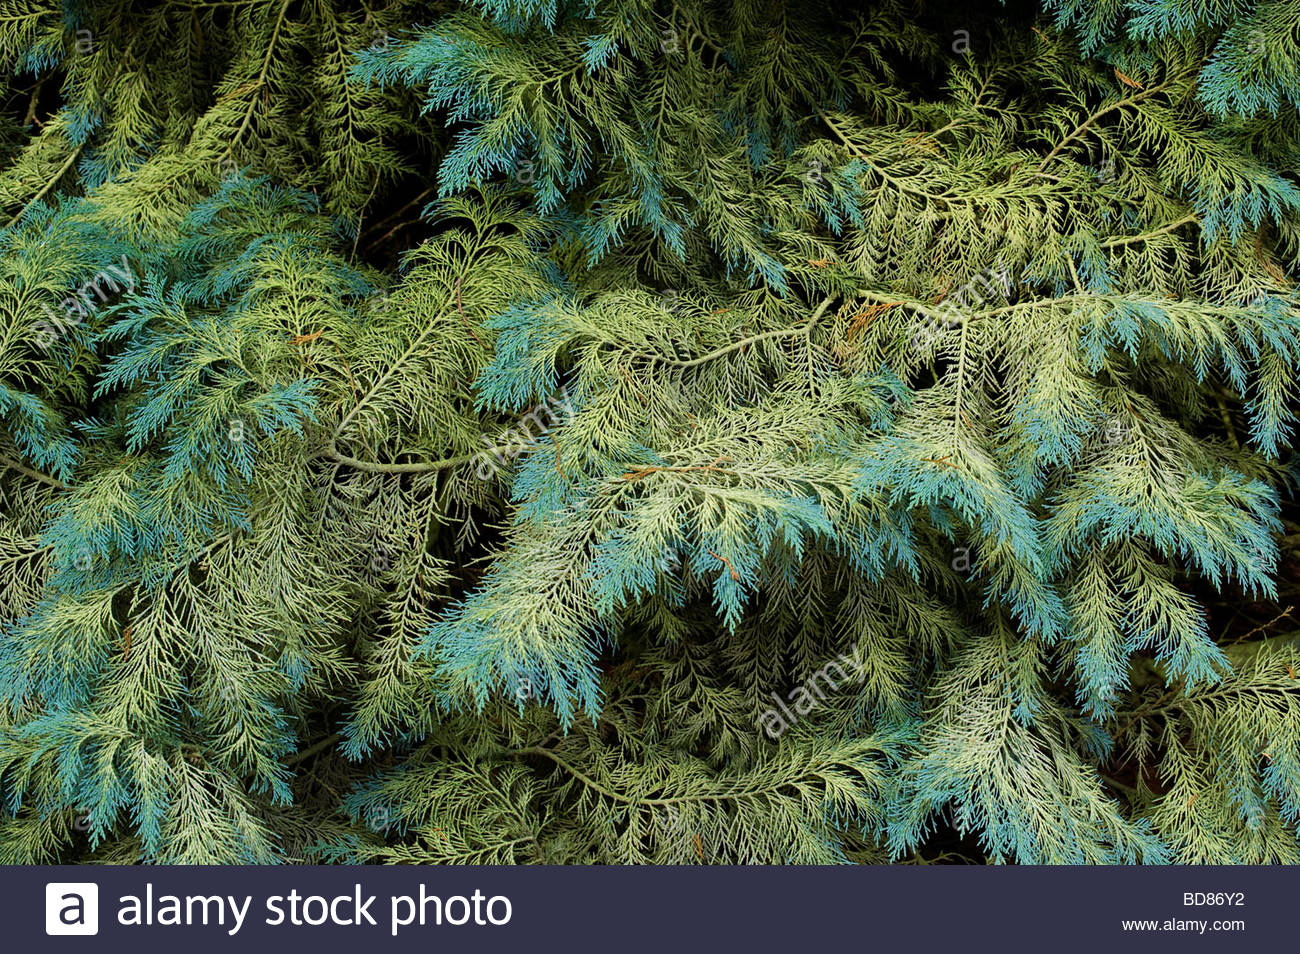 Chamaecyparis lawsoniana . Lawsons Cypress / Port Orford cedar tree foliage - Stock Image